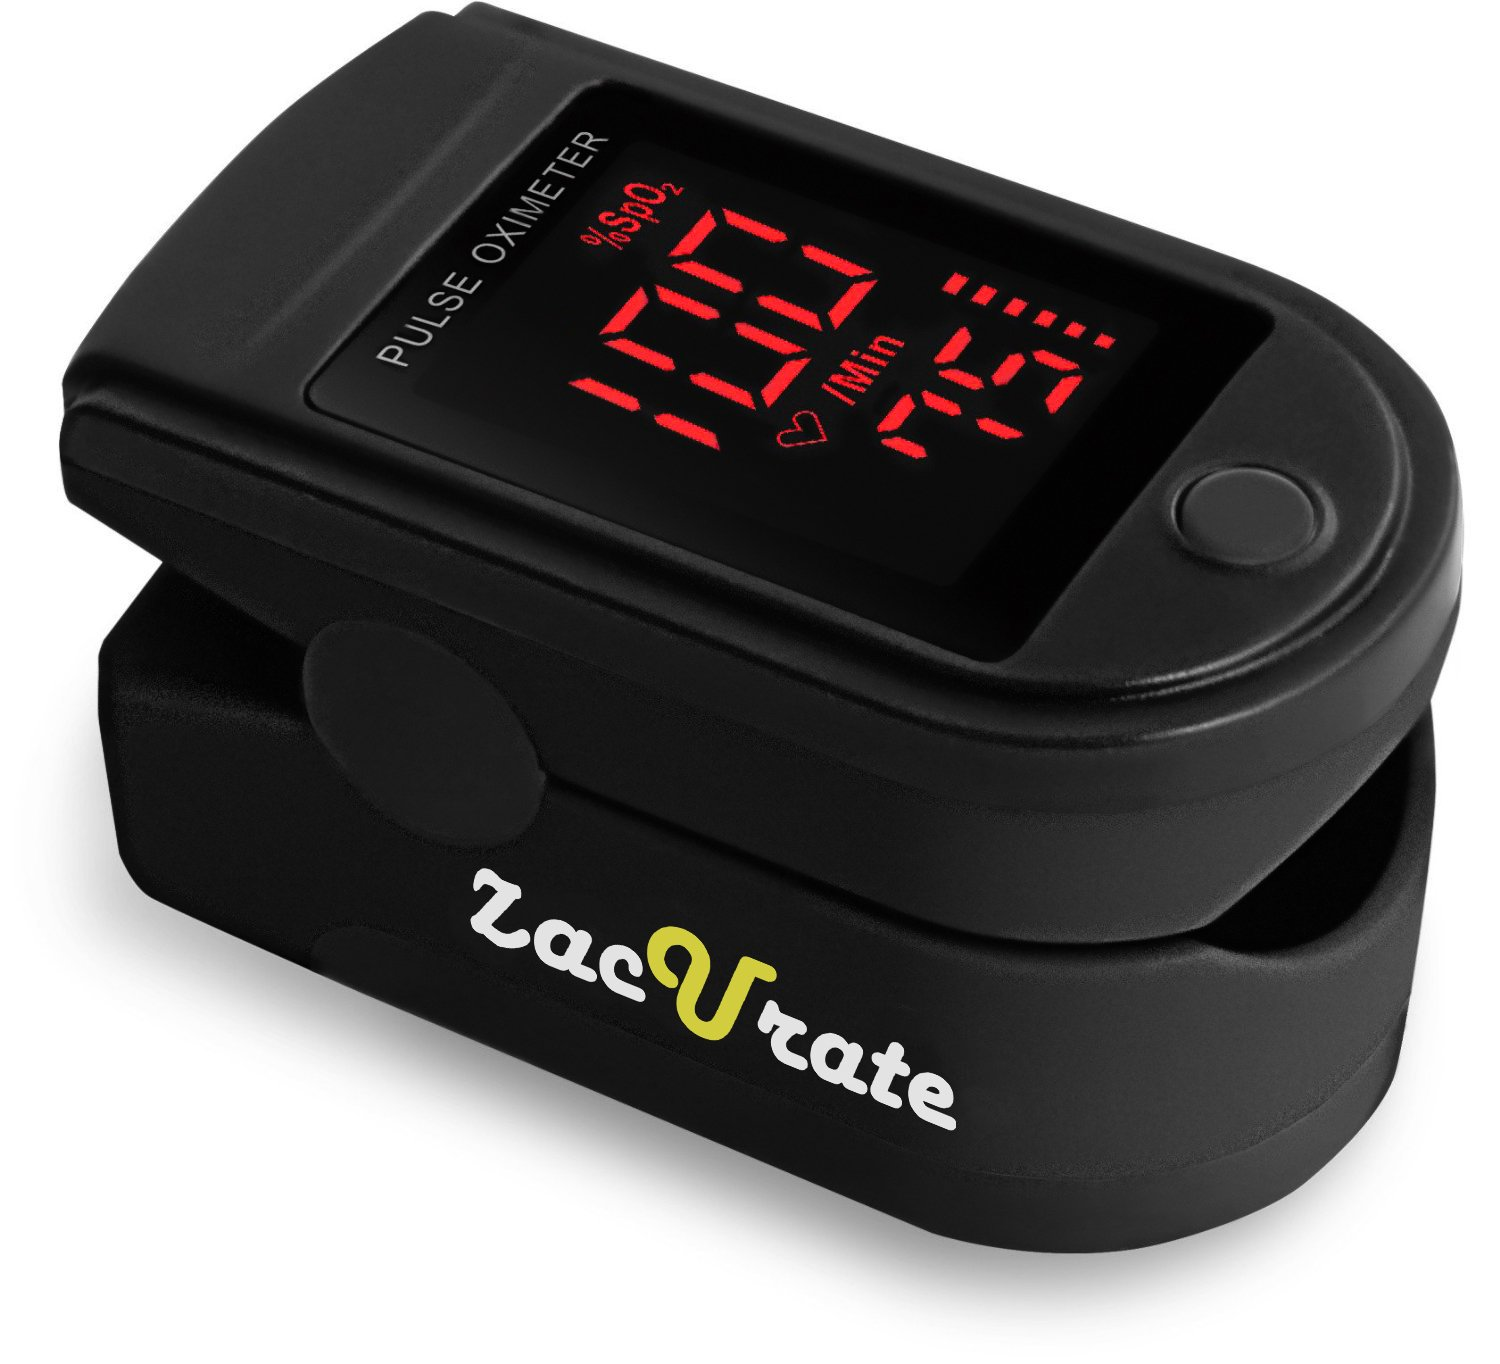 Zacurate Pro Series 500DL Fingertip Pulse Oximeter Blood Oxygen Saturation Monitor with silicon cover, batteries and lanyard (Mystic Black) Acc U Rate 10430-BKO